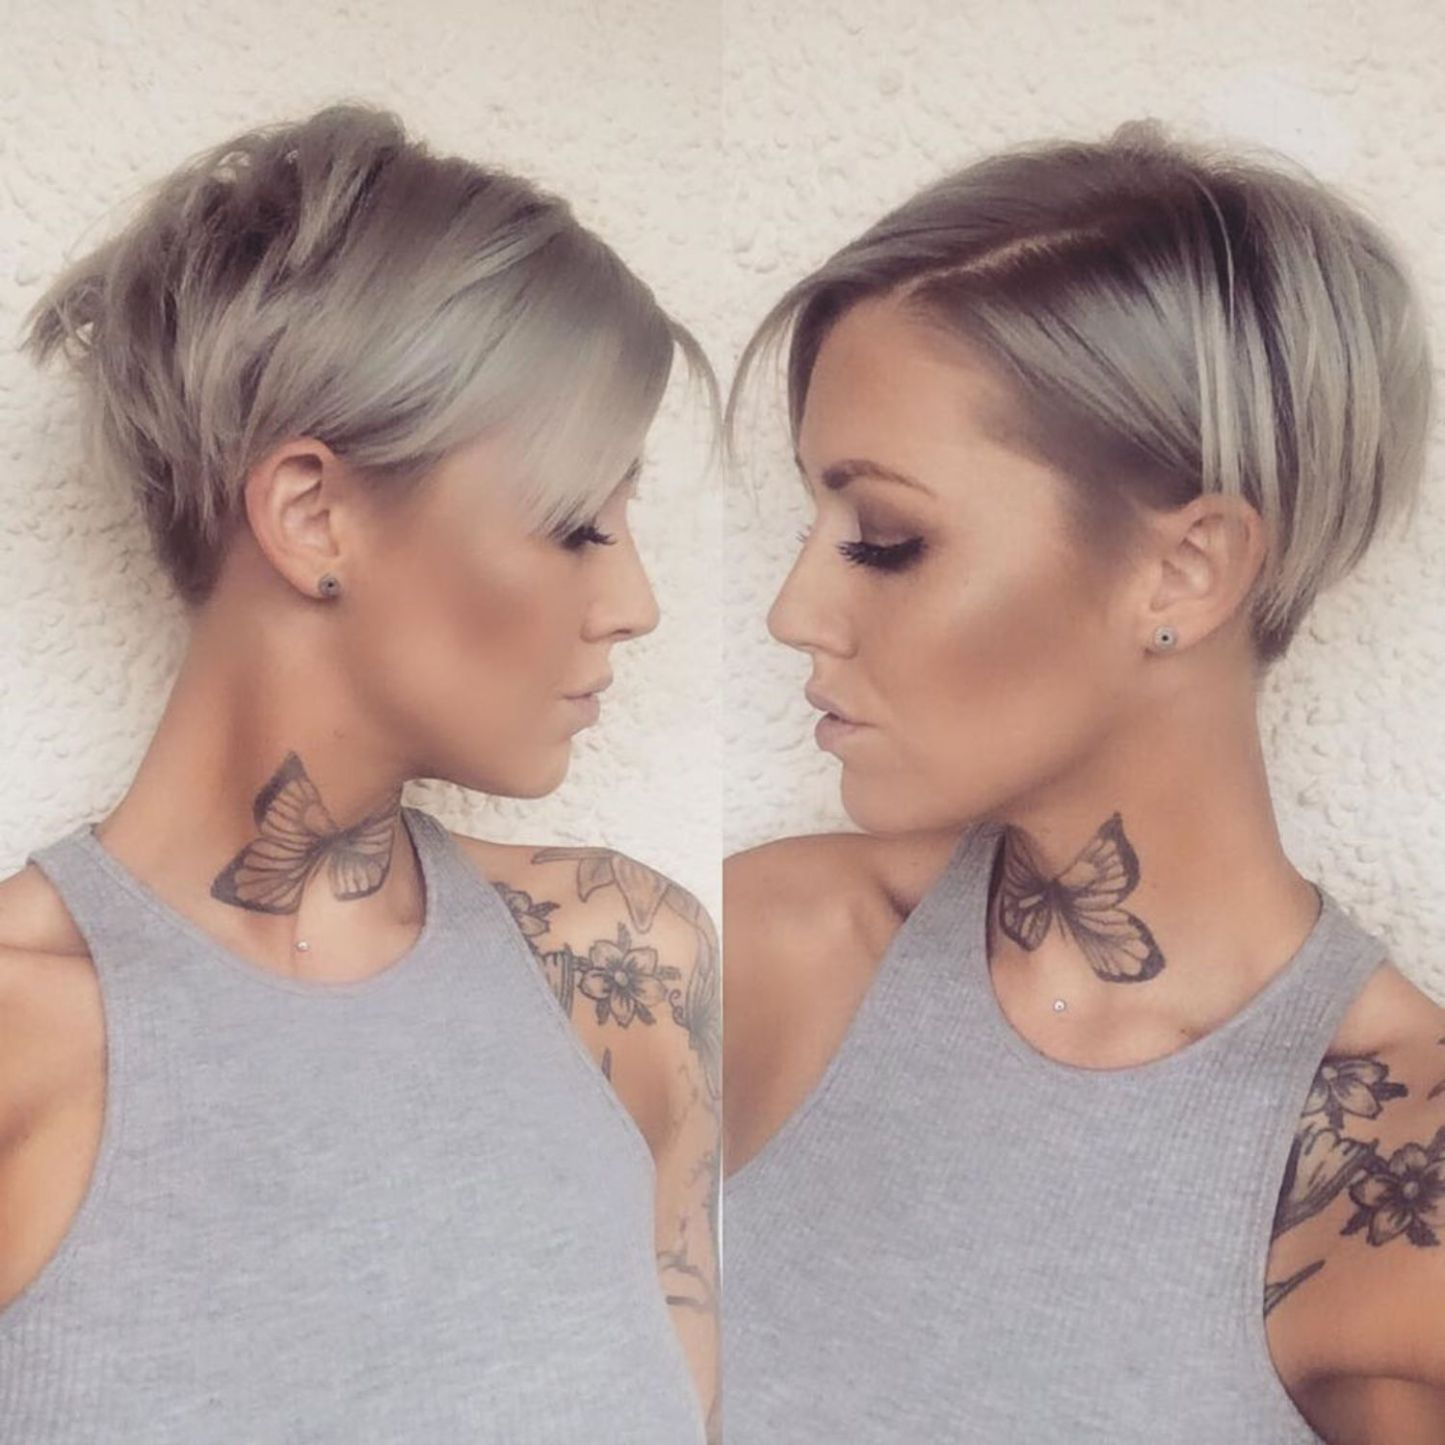 short shaggy spiky edgy pixie cuts and hairstyles in